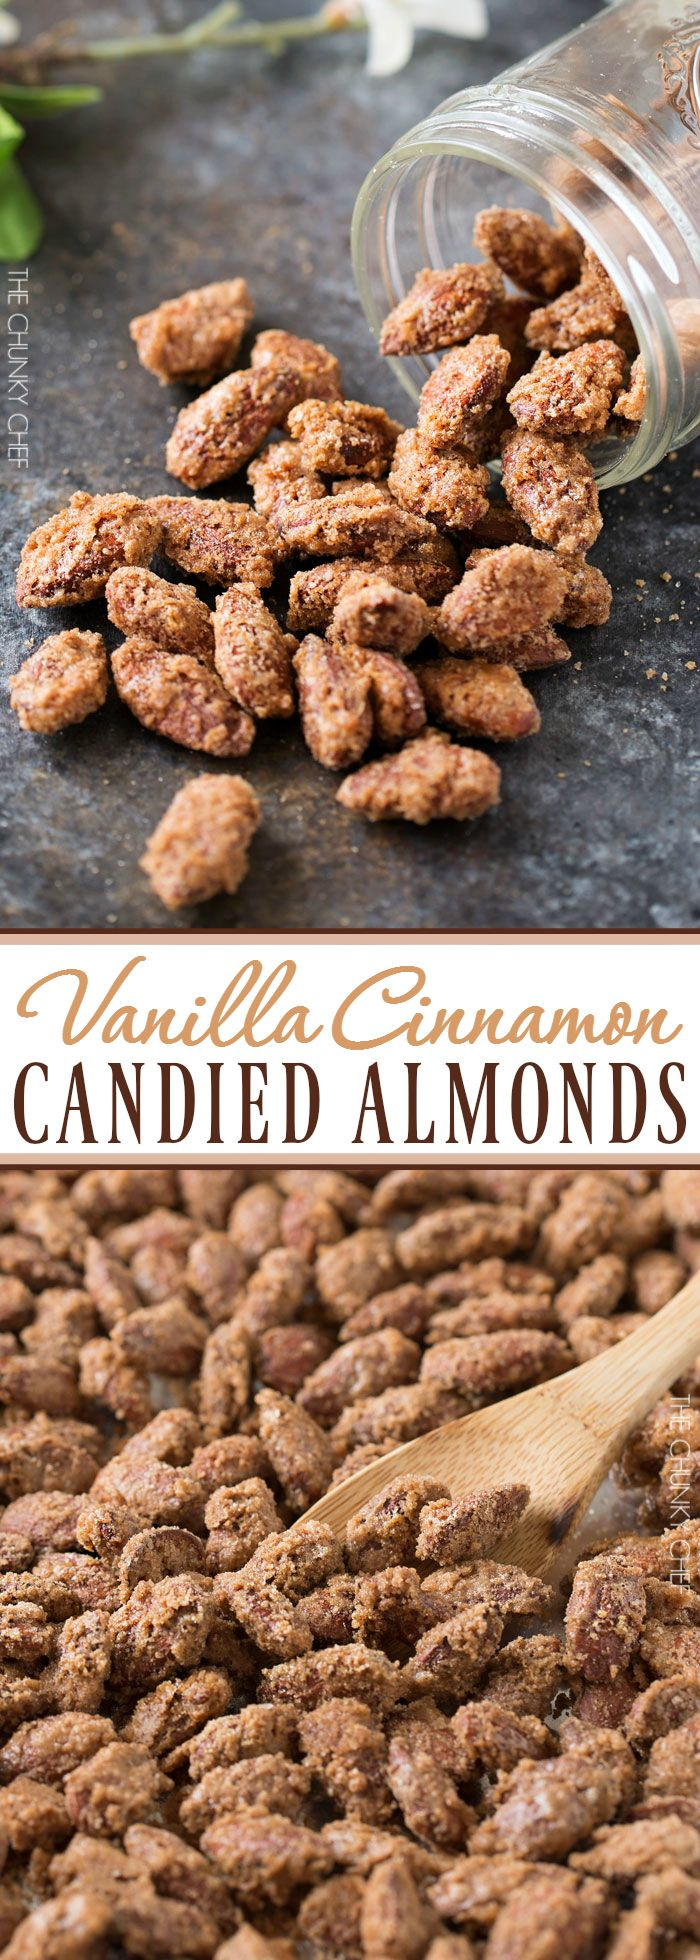 Vanilla Cinnamon Candied Almonds | Sweet, crunchy, roasted candied almonds coated in a mouthwatering vanilla and cinnamon crust!